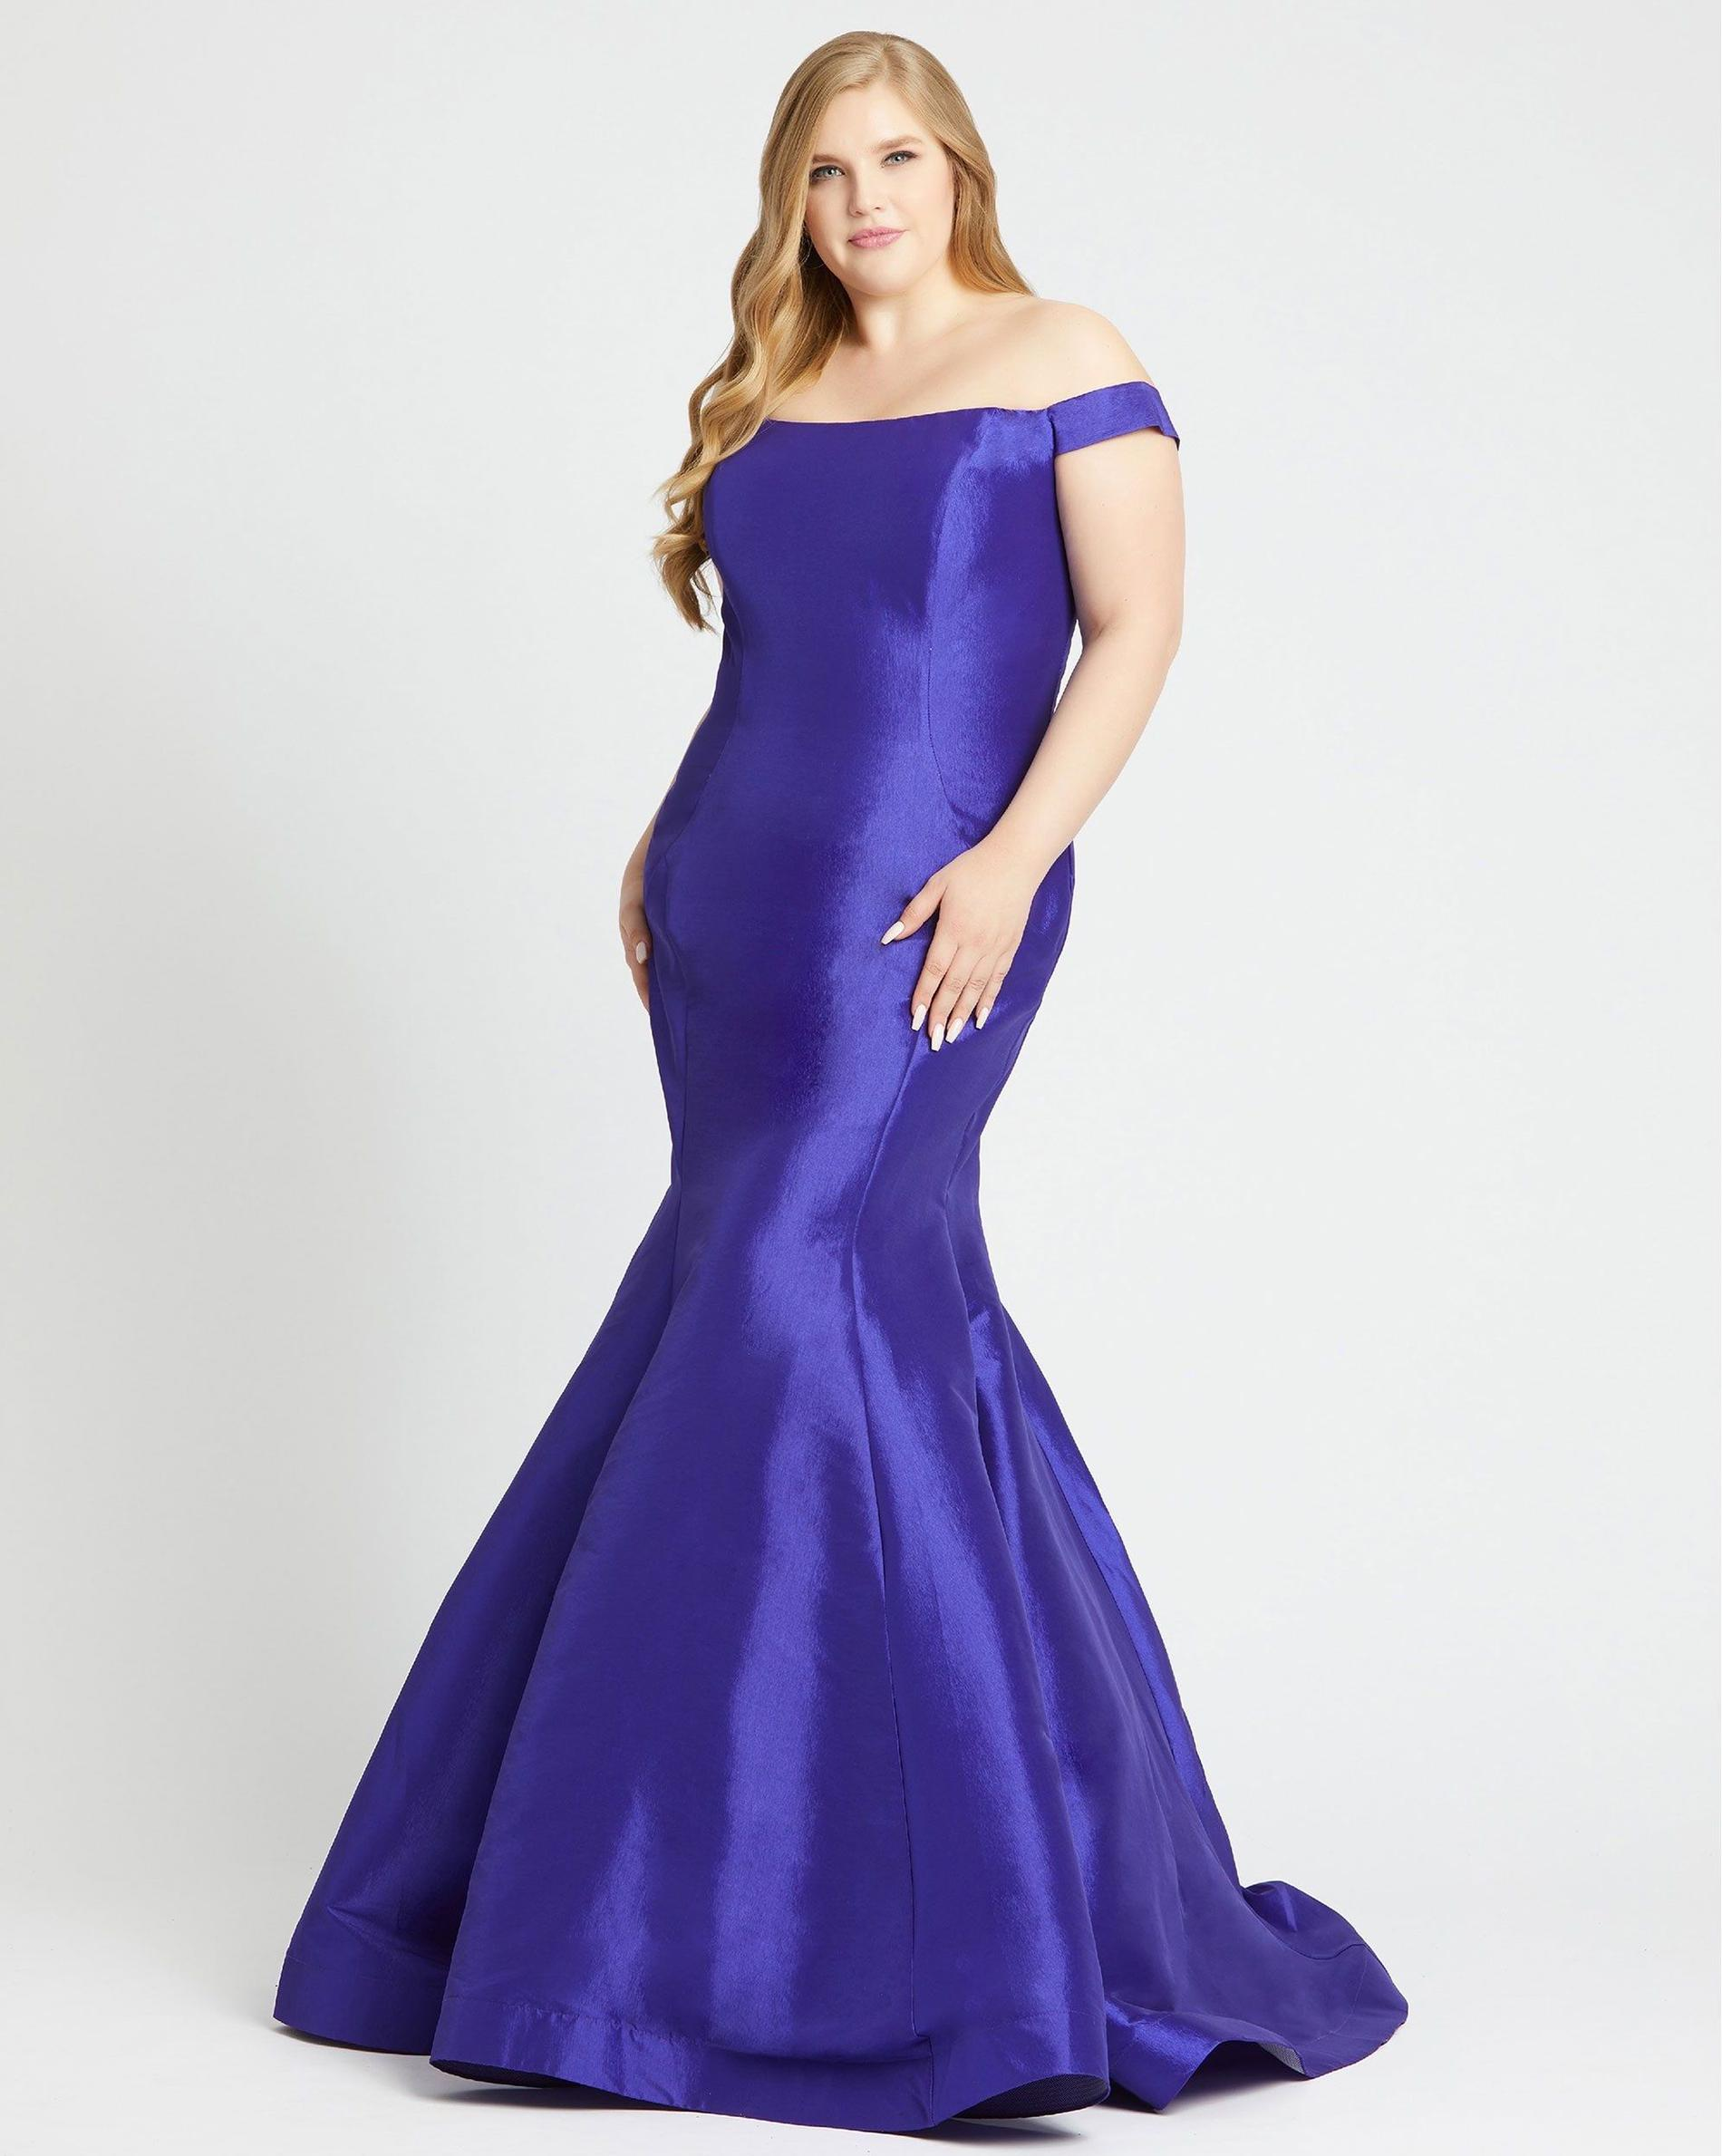 Style 66803 Mac Duggal Purple Size 18 Tall Height Wedding Guest Mermaid Dress on Queenly